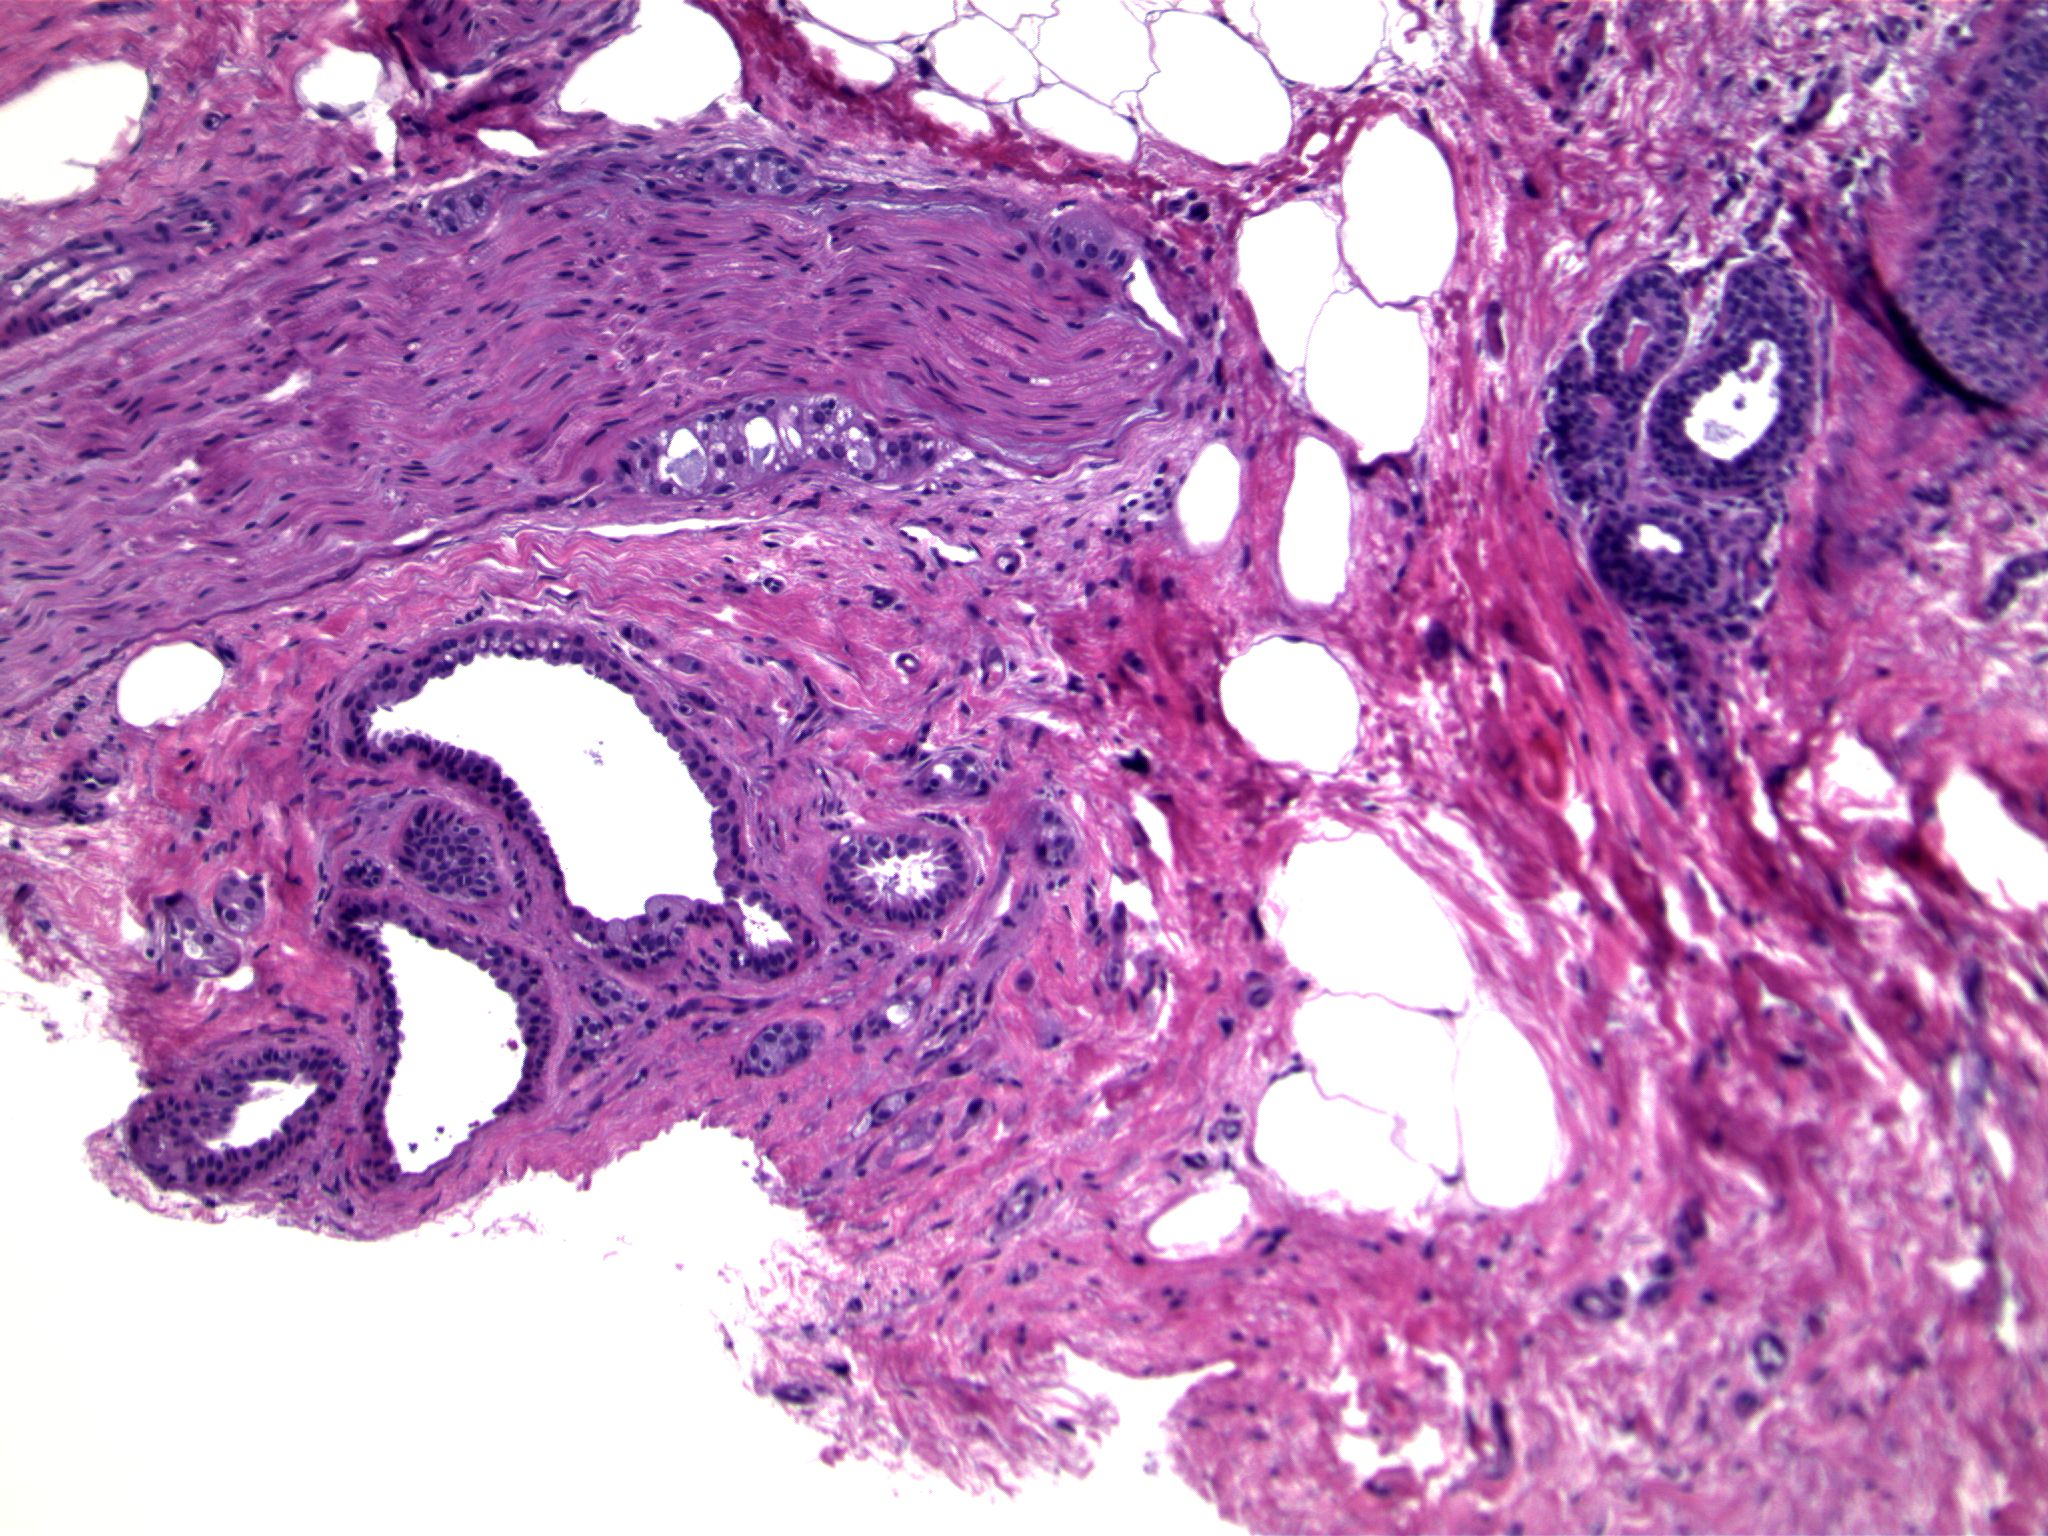 Image 1. Two lobular units, one of which has focal apocrine cytology.